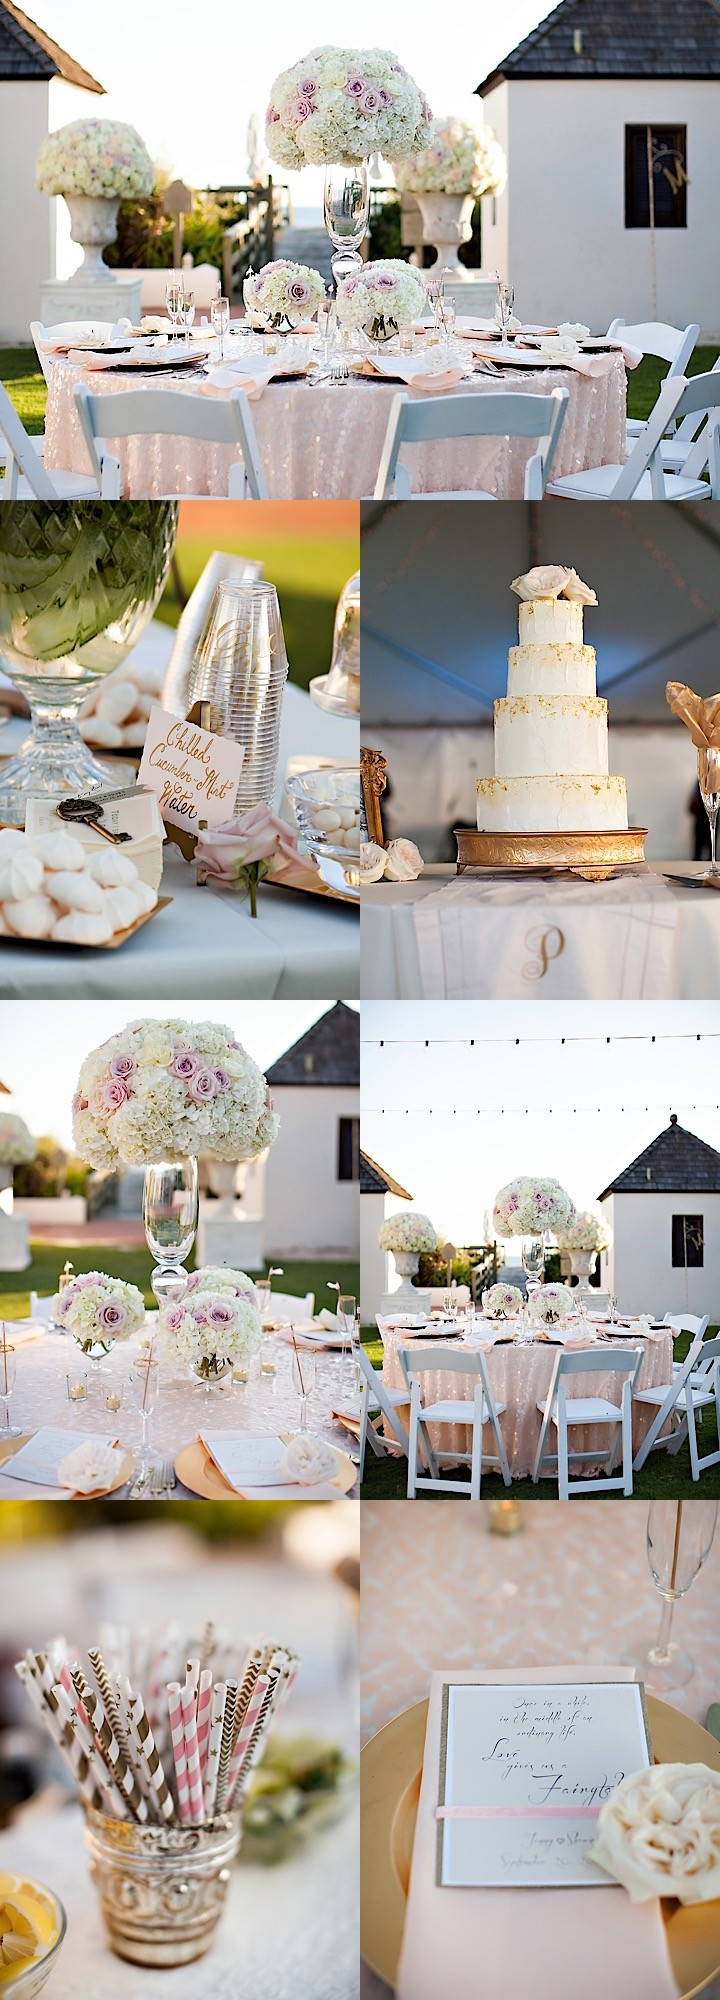 florida-wedding-collage2-04092015-ky-1